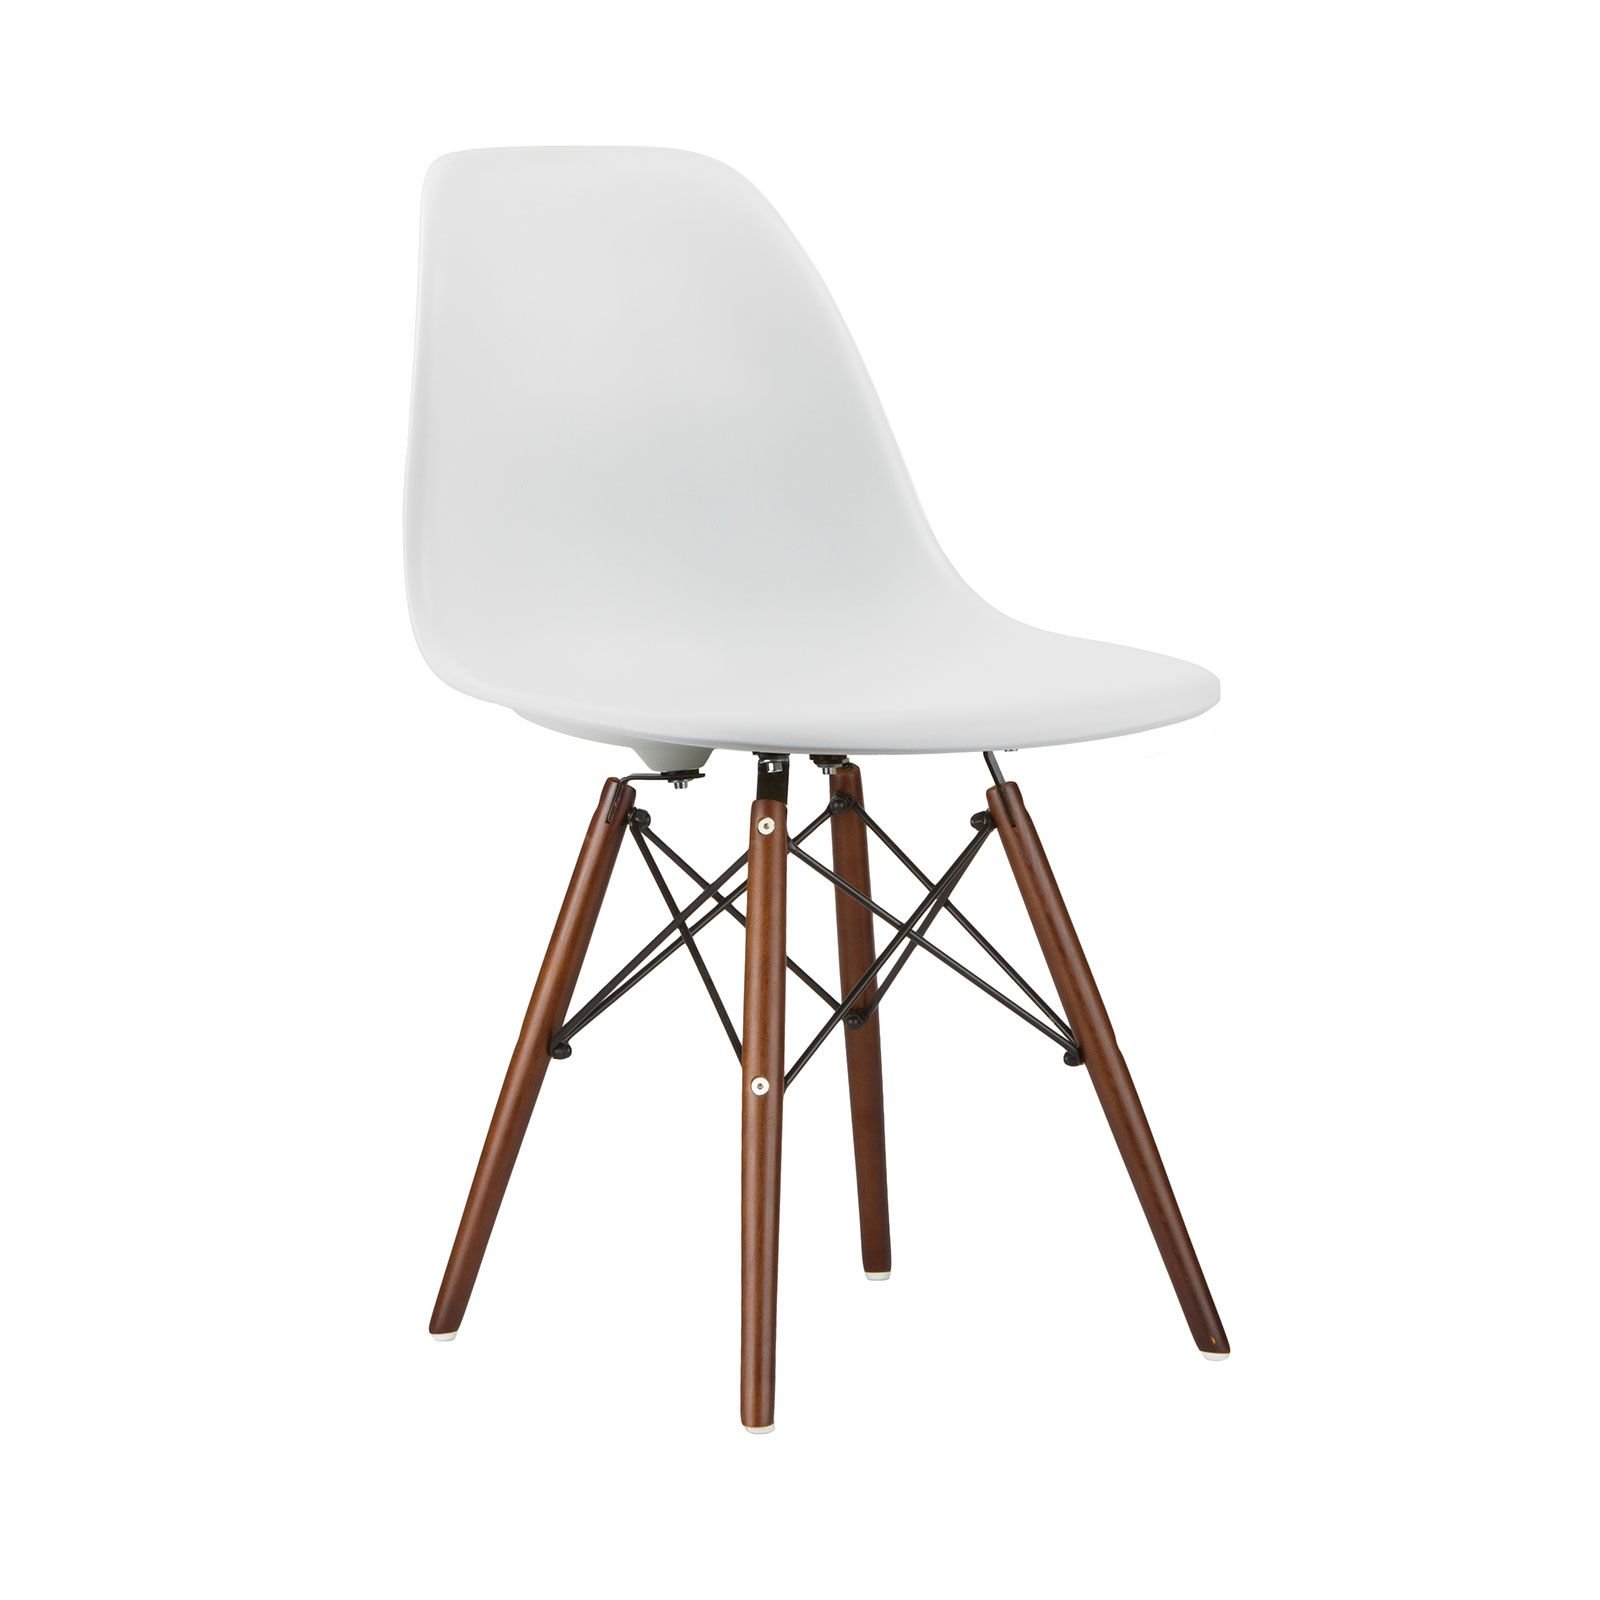 Beau Our Walnut Slope Chair Is Inspired By An Iconic Design Of The 1950s And  1960s. The Original Was Born Out Of Technological Advancements That Allowed  A Chair ...